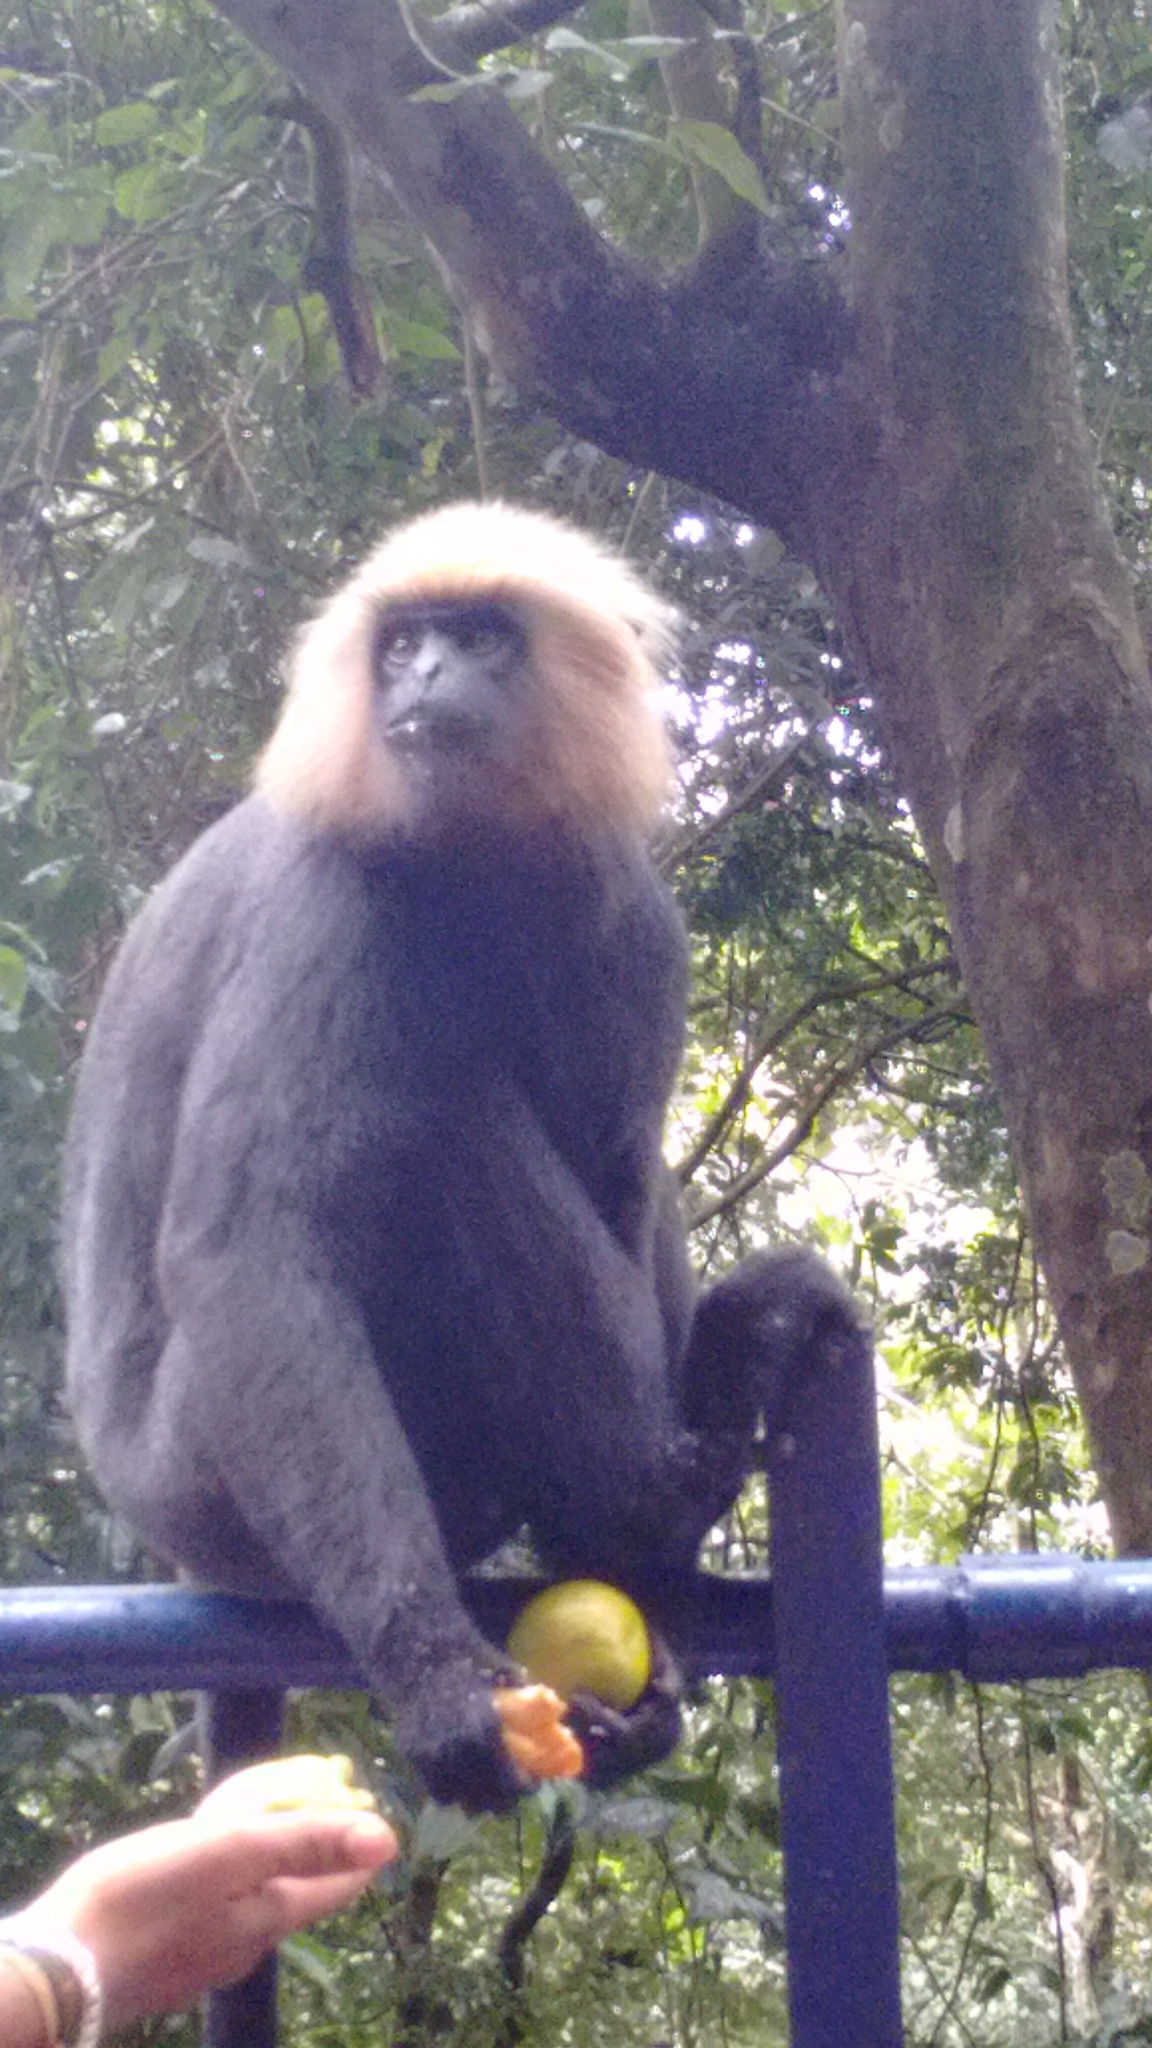 LION TAILED MACAQUE by ashish.ashok1